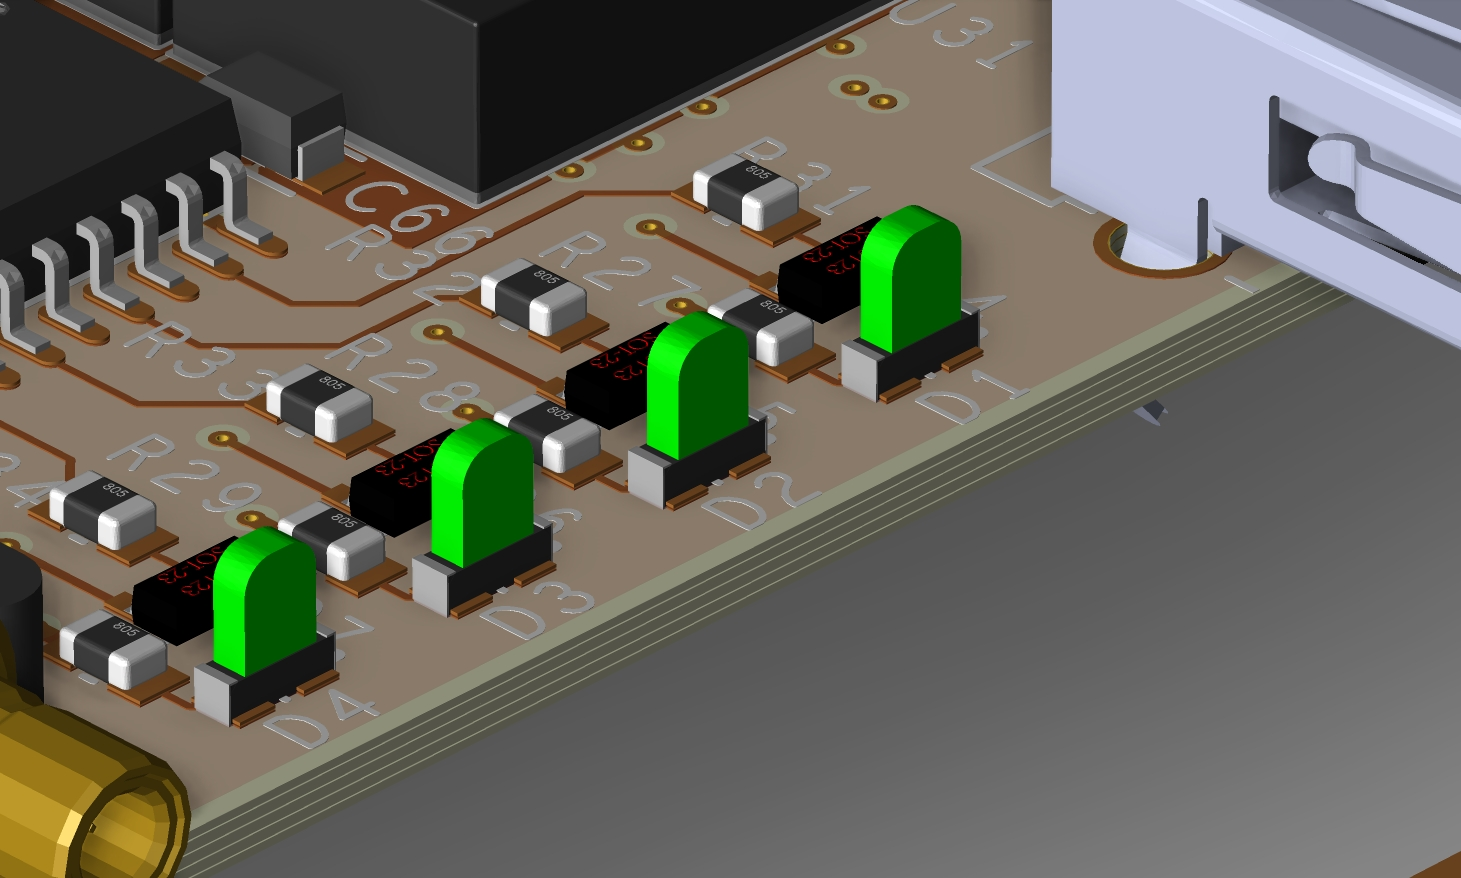 Screenshot of 3D layout showing component placement on their pads